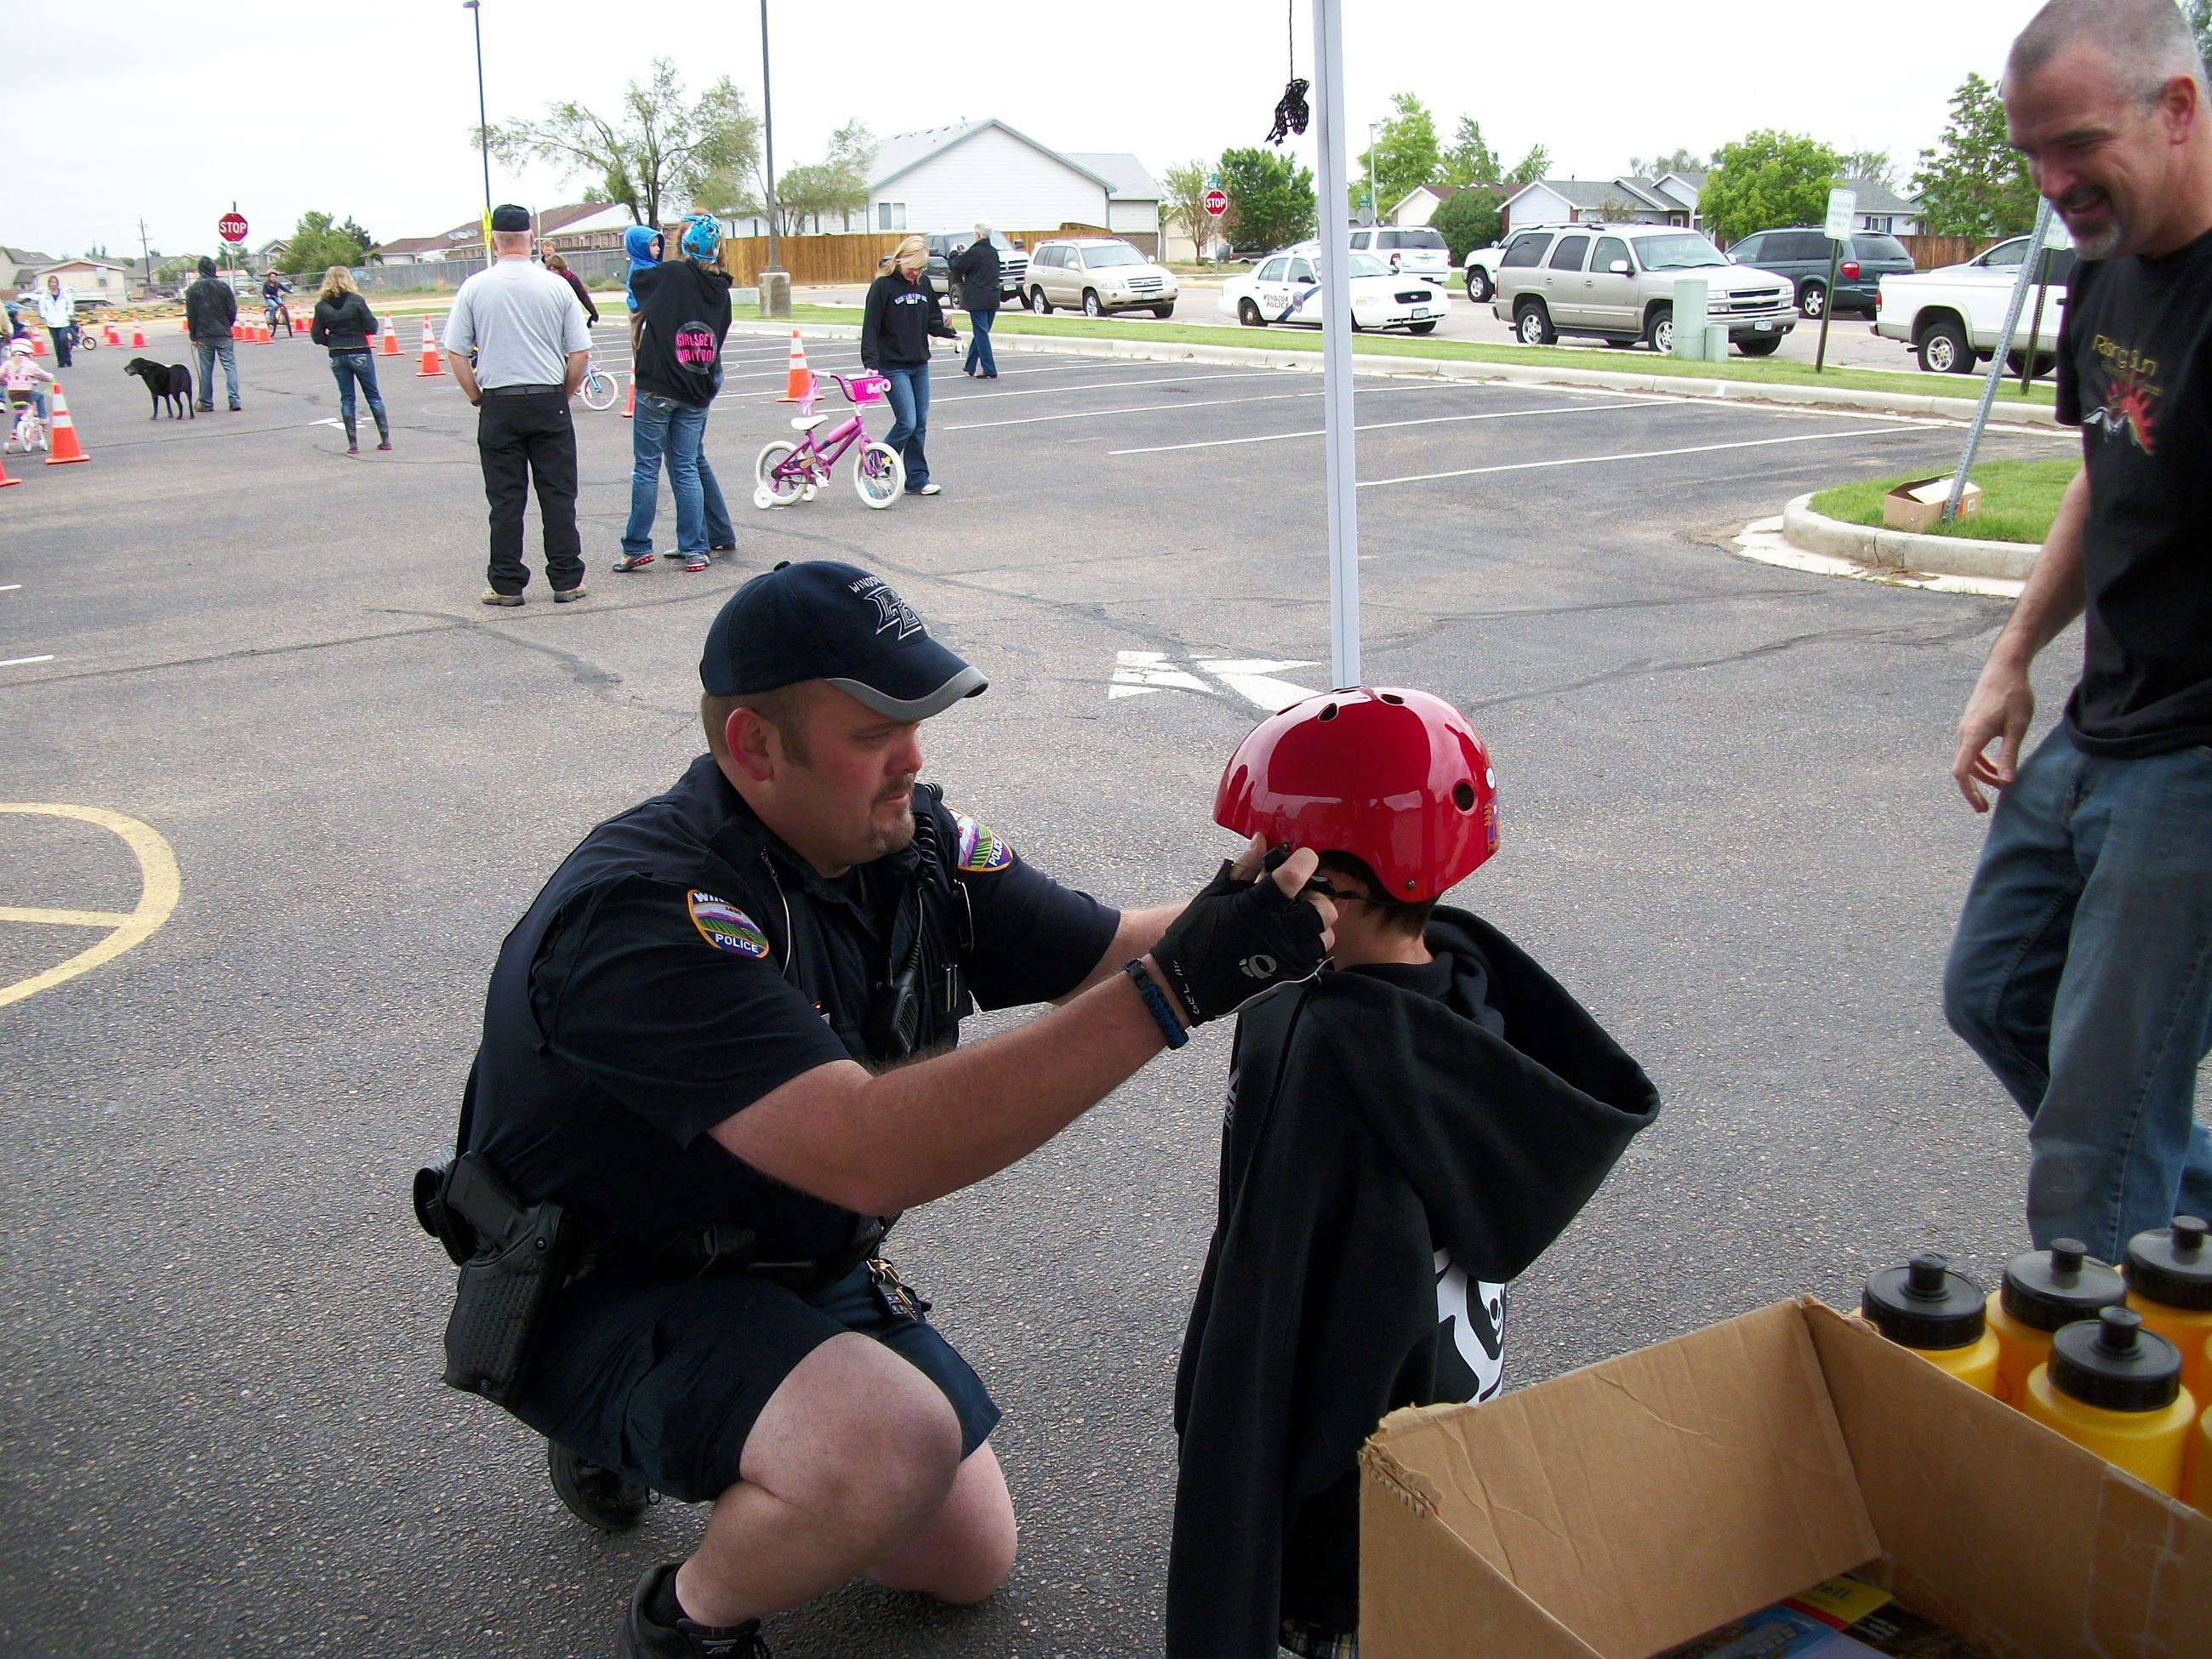 A police officer fitting a bike helmet on a young child